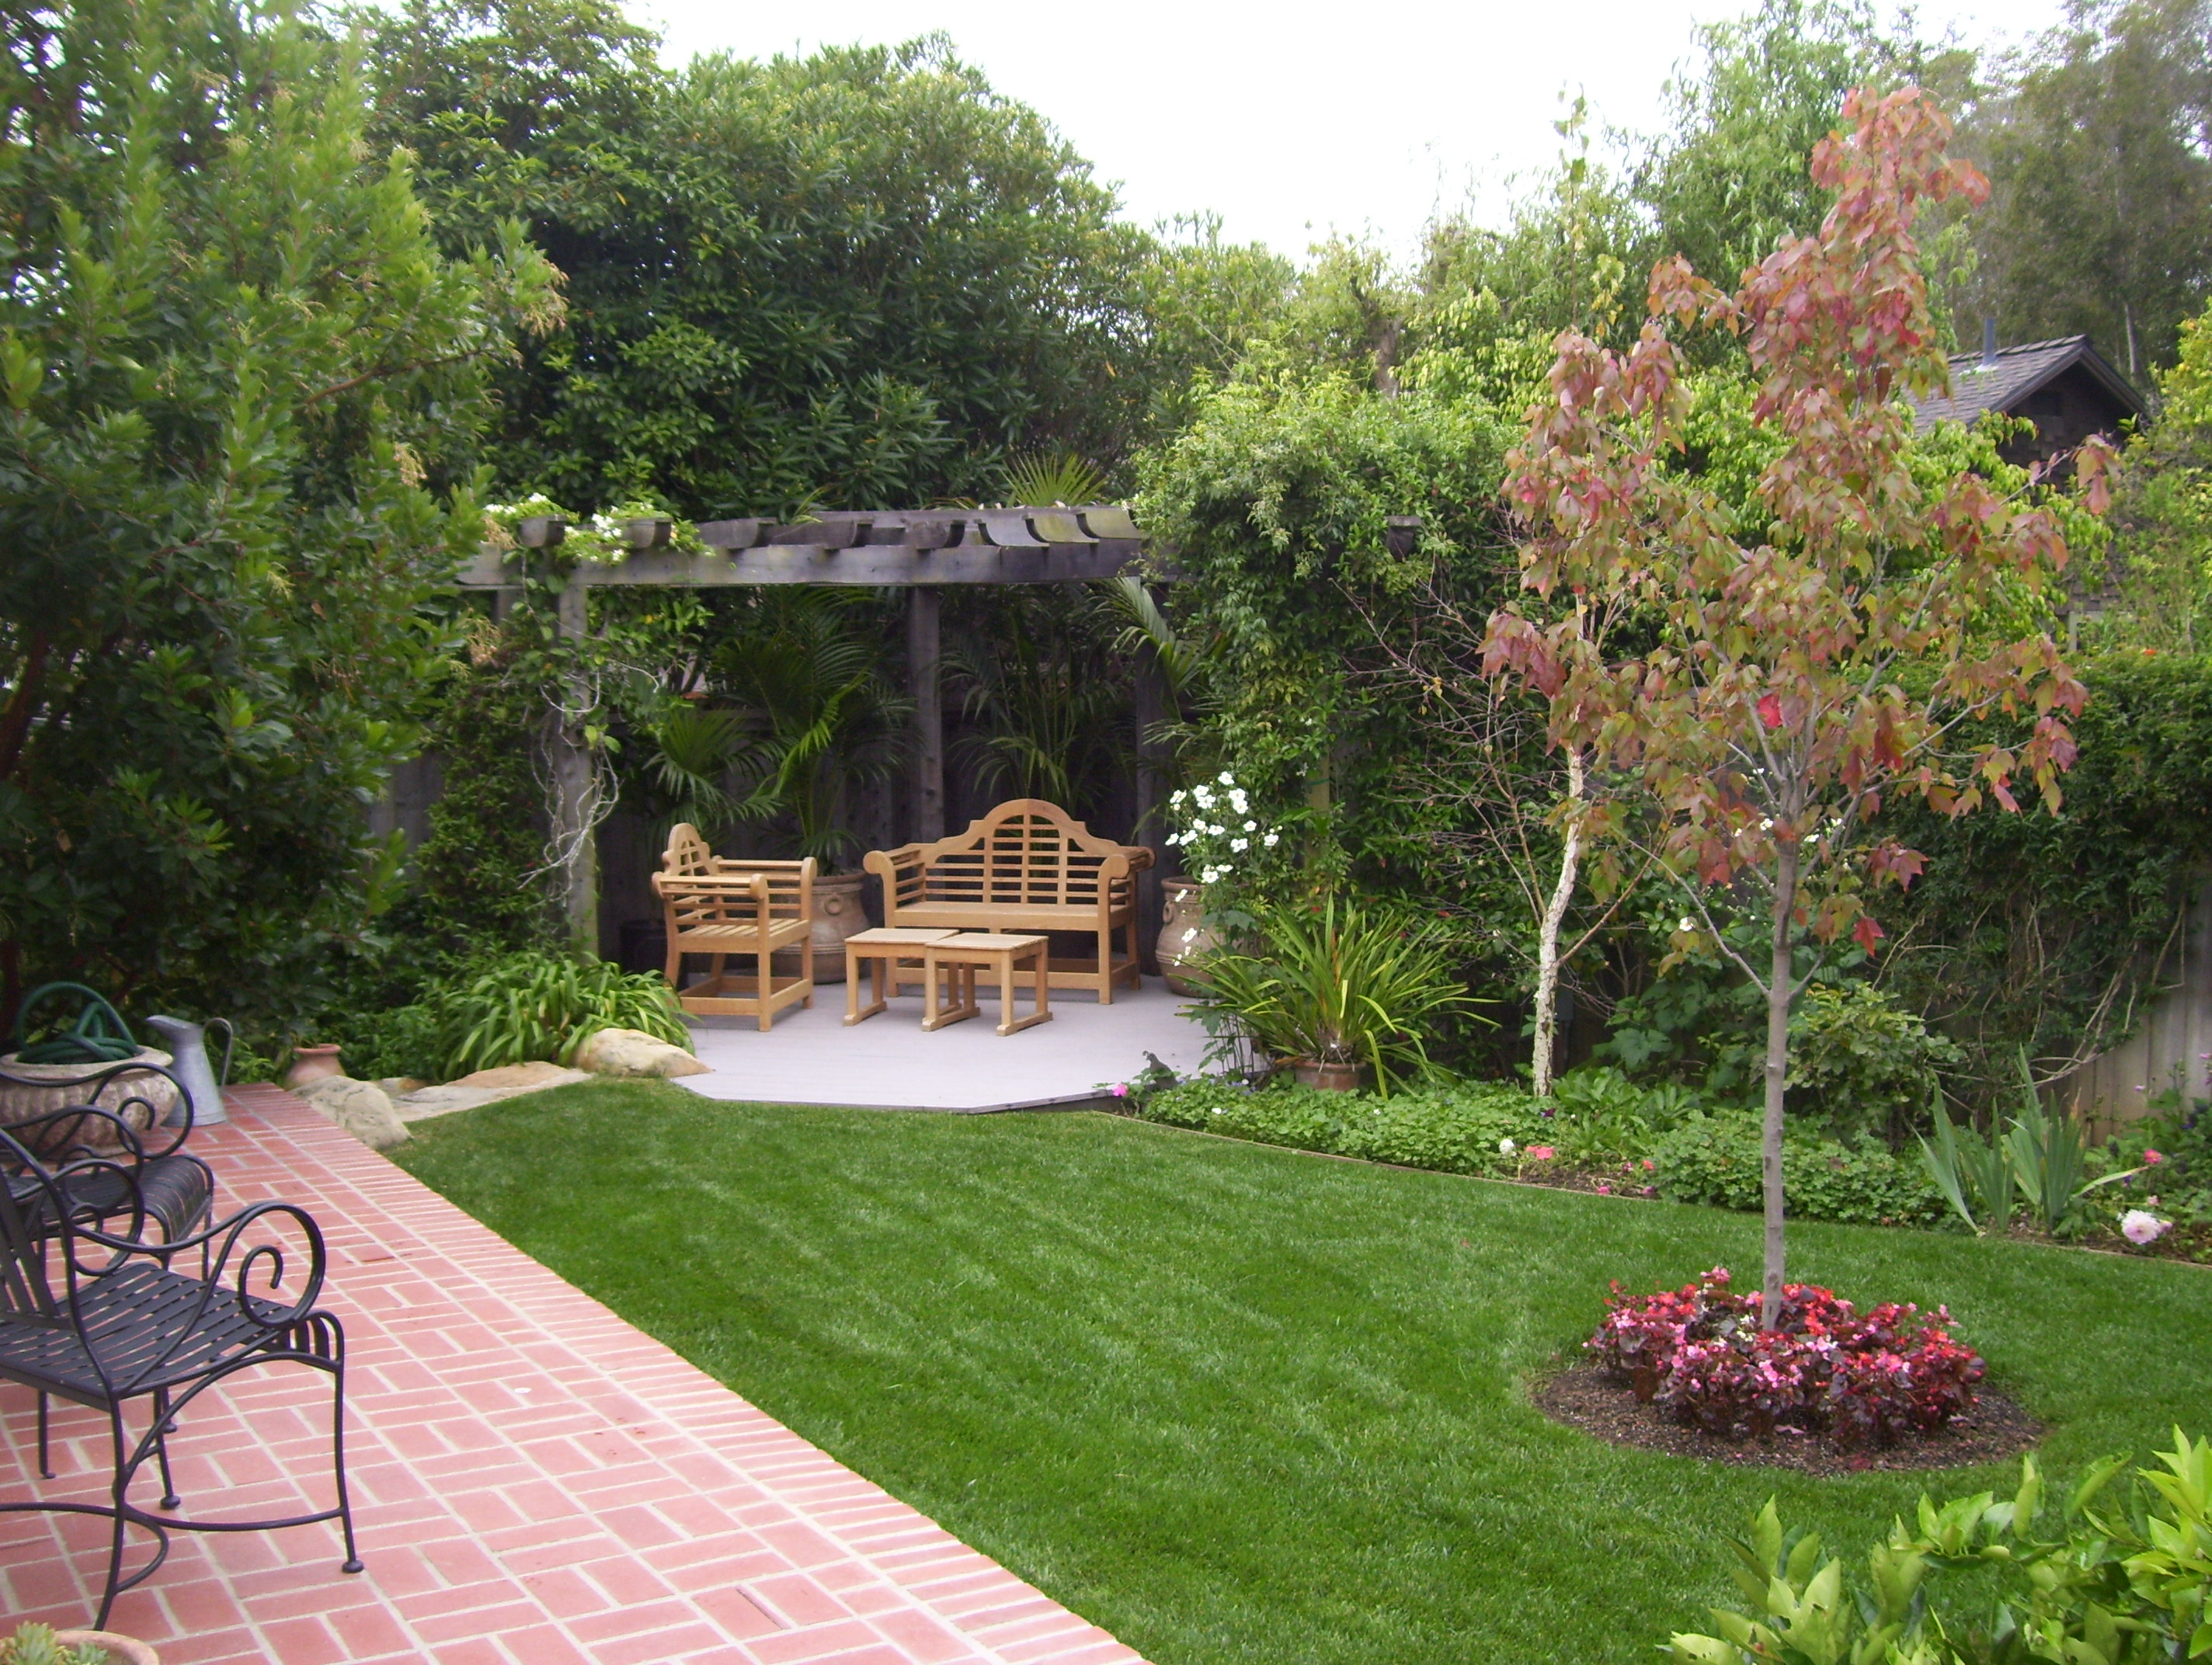 Backyard landscaping ideas santa barbara down to earth for House landscape design